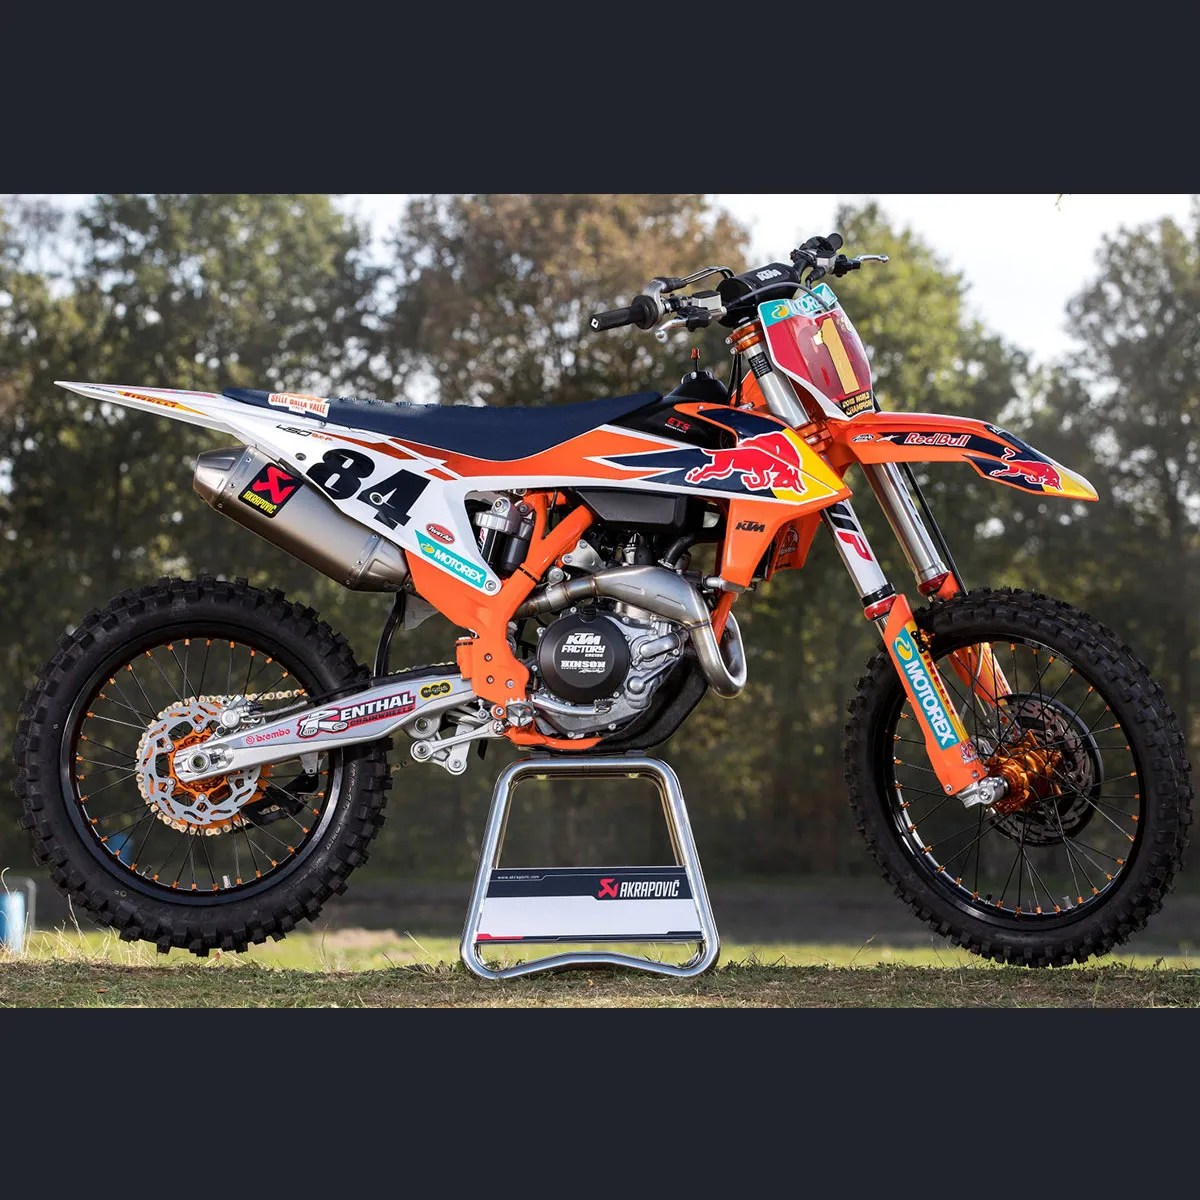 450-SX-F-Herlings-Replica2